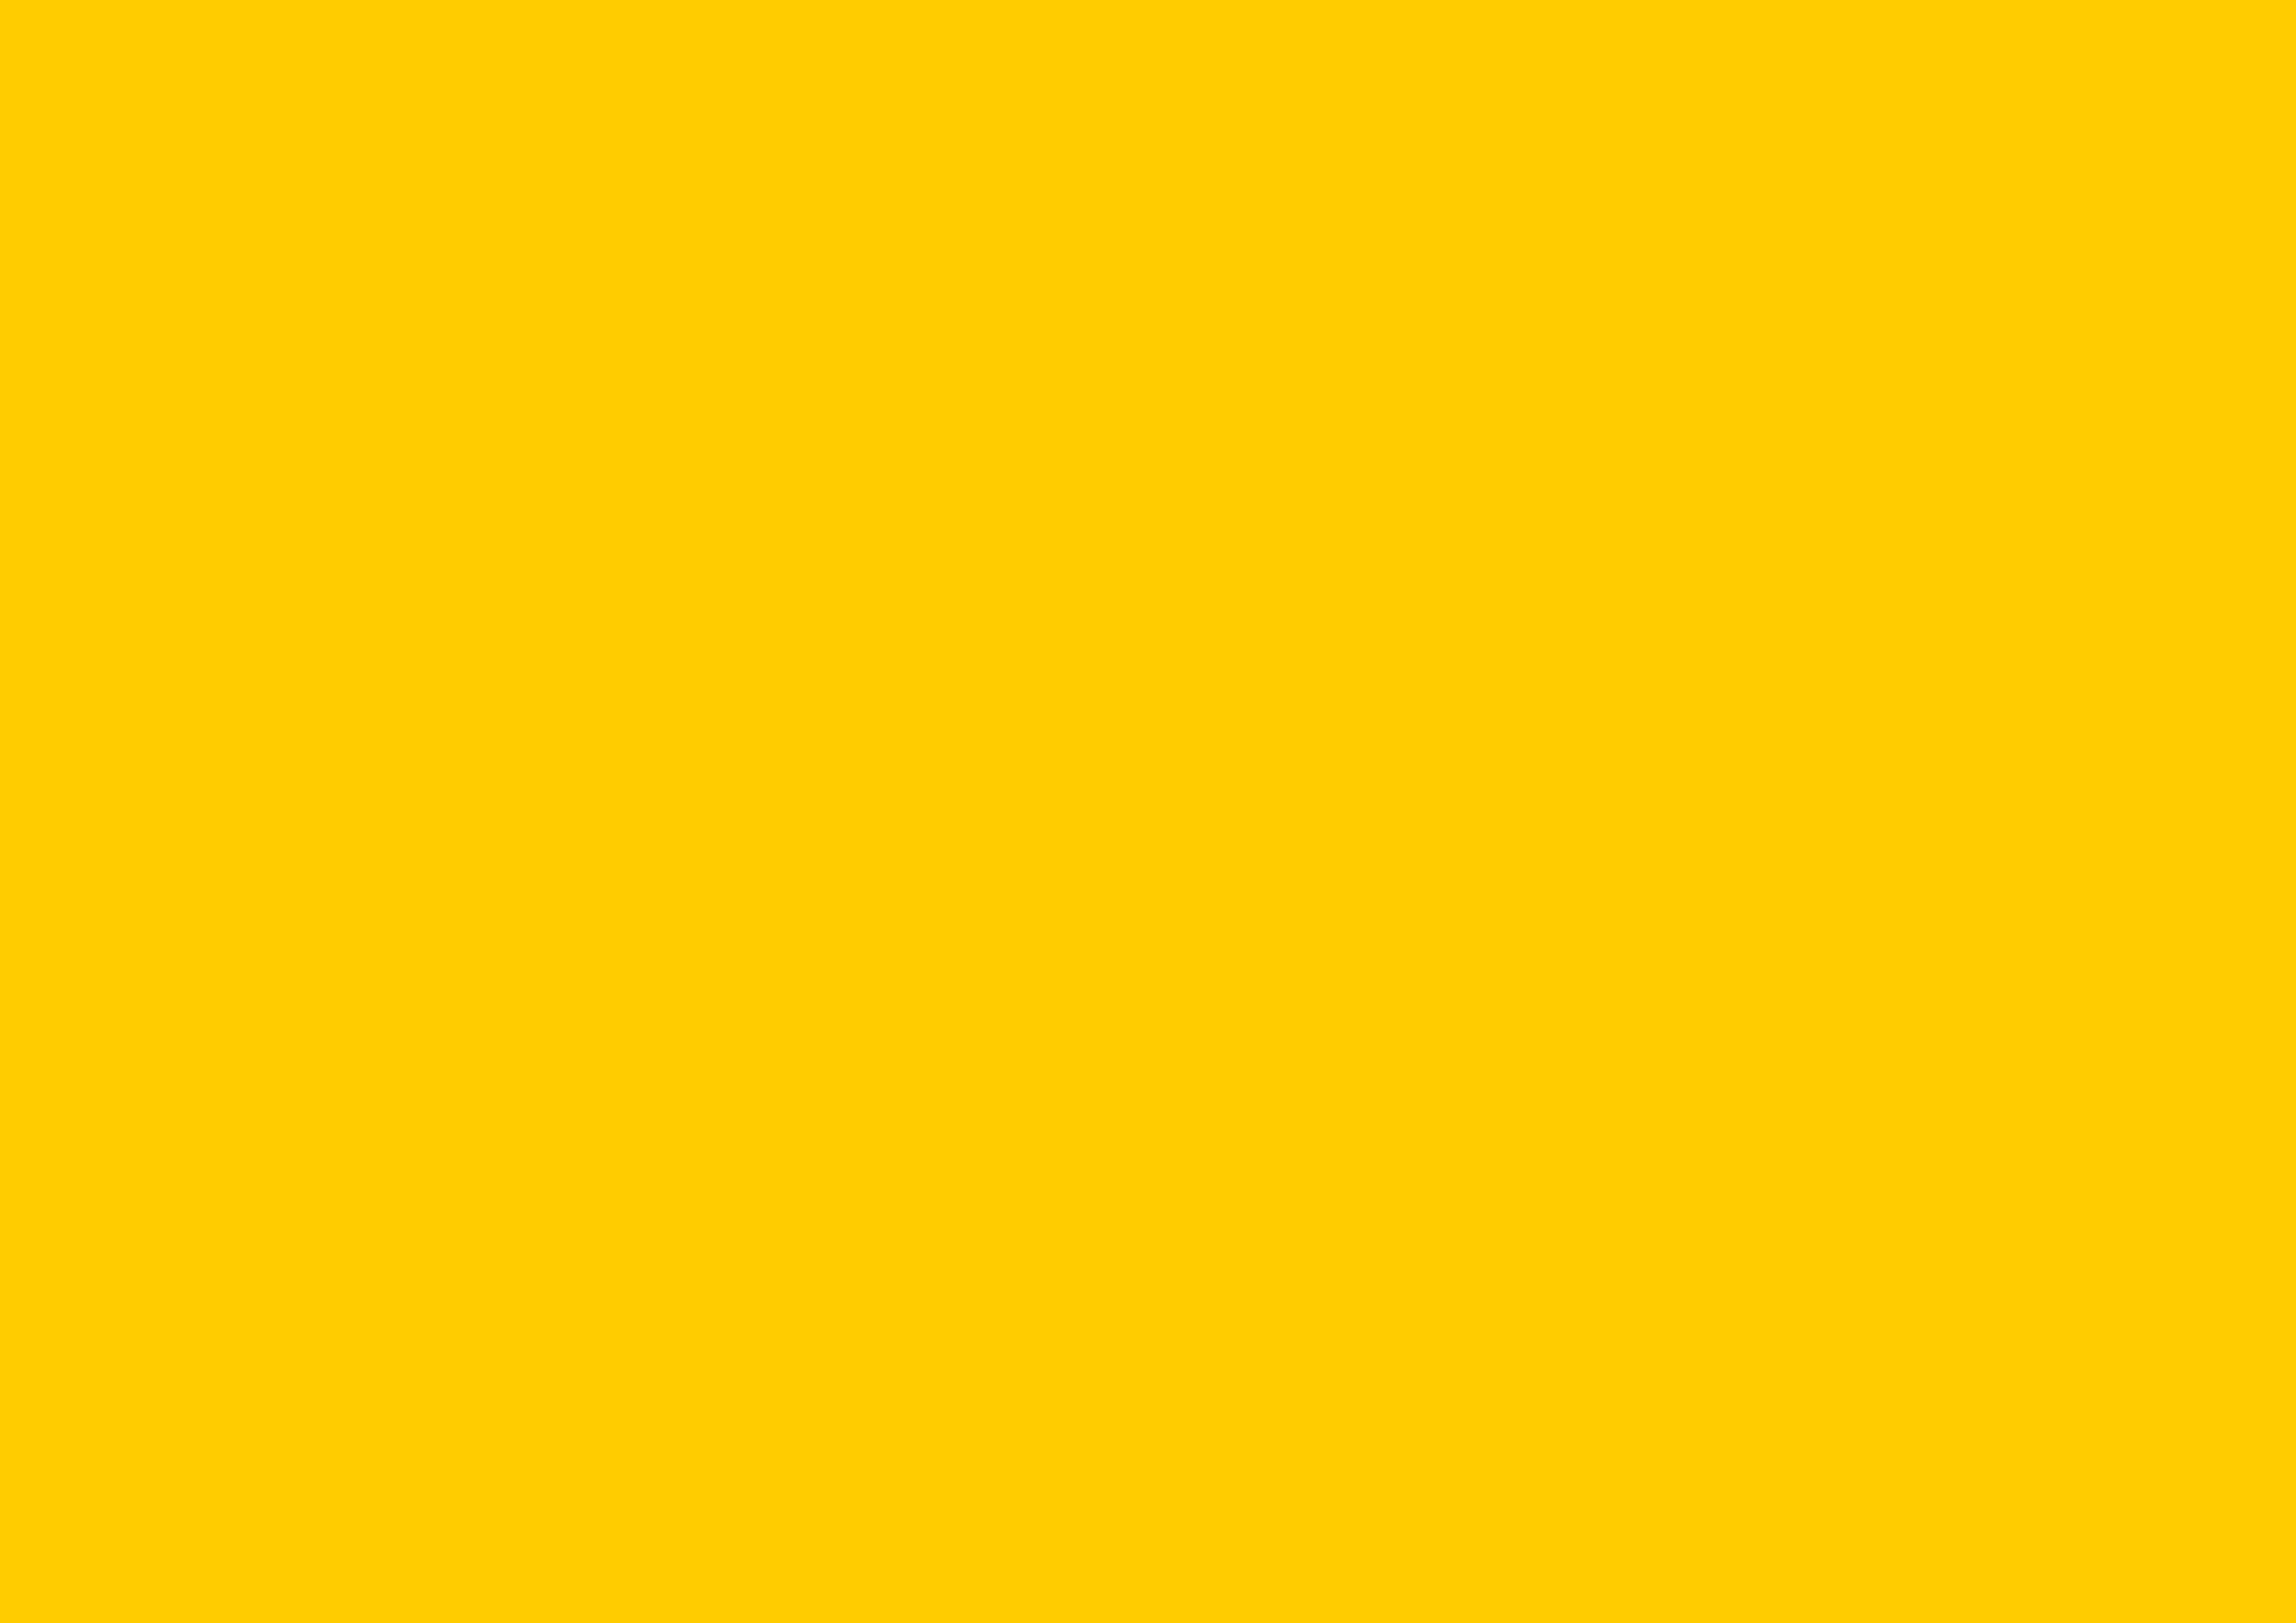 3508x2480 Tangerine Yellow Solid Color Background